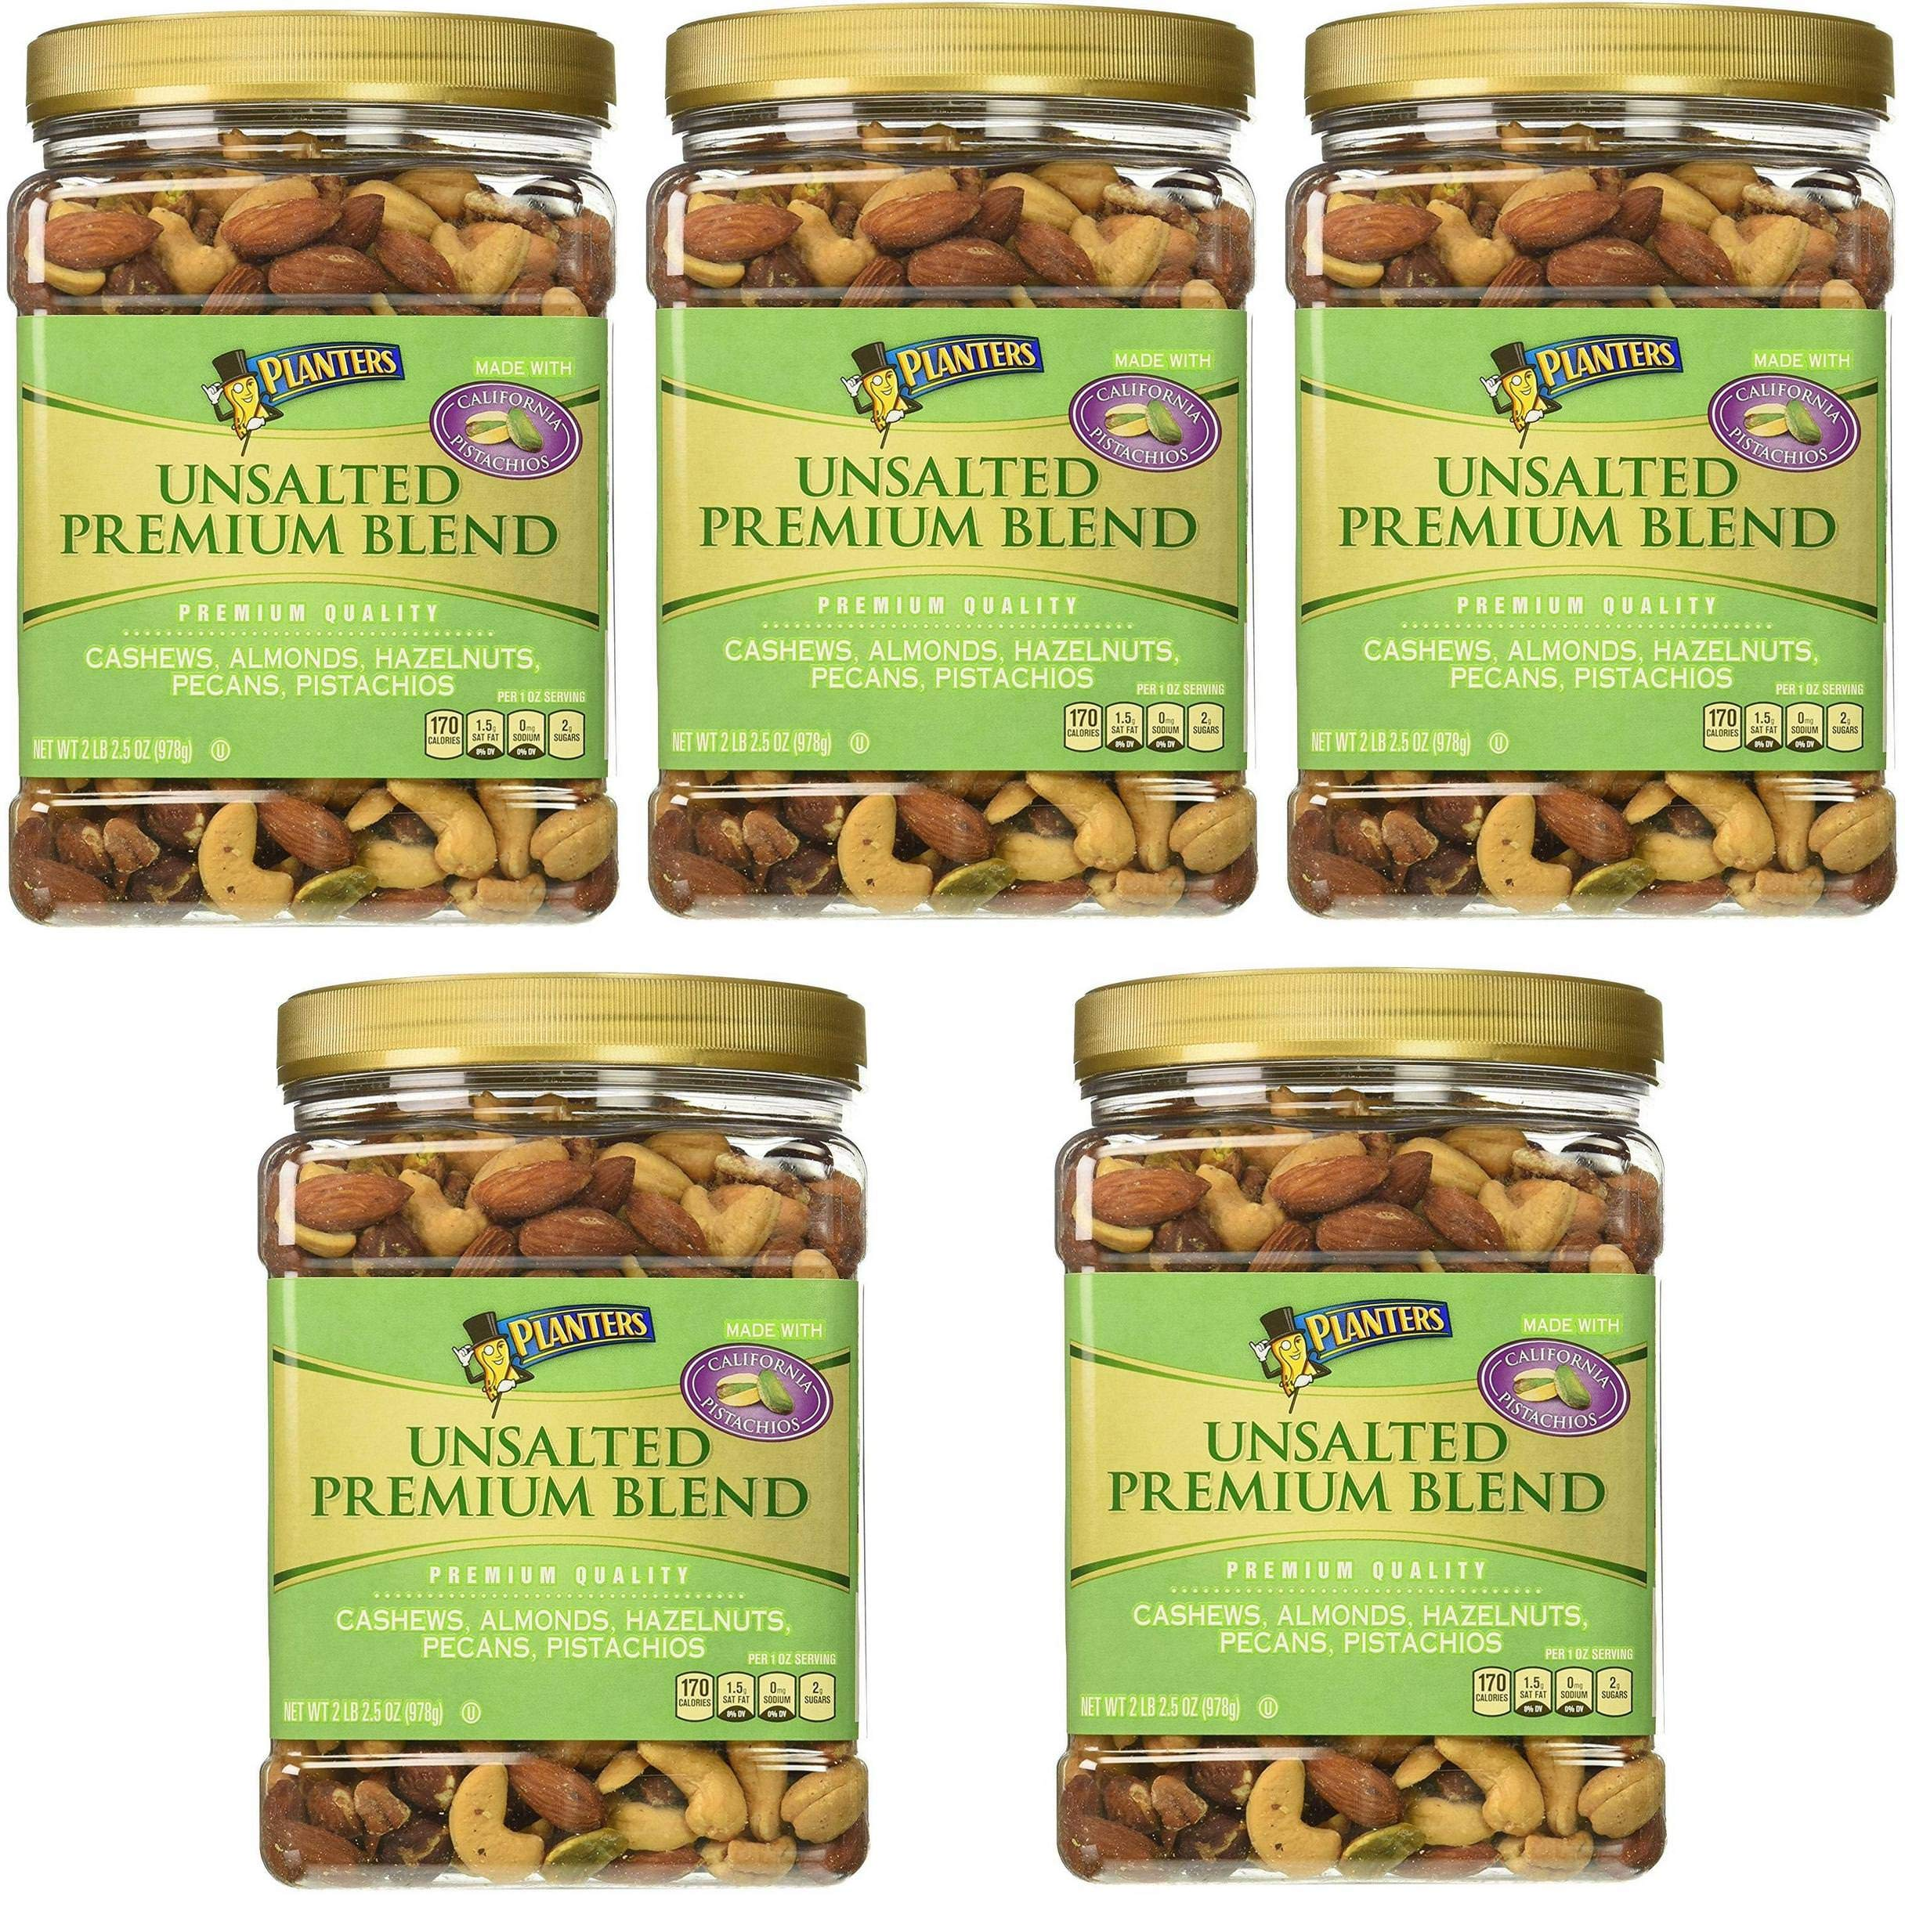 Planters Premium Blend Mixed Nuts, Unsalted, 34.5 Ounce, 5 Tubs